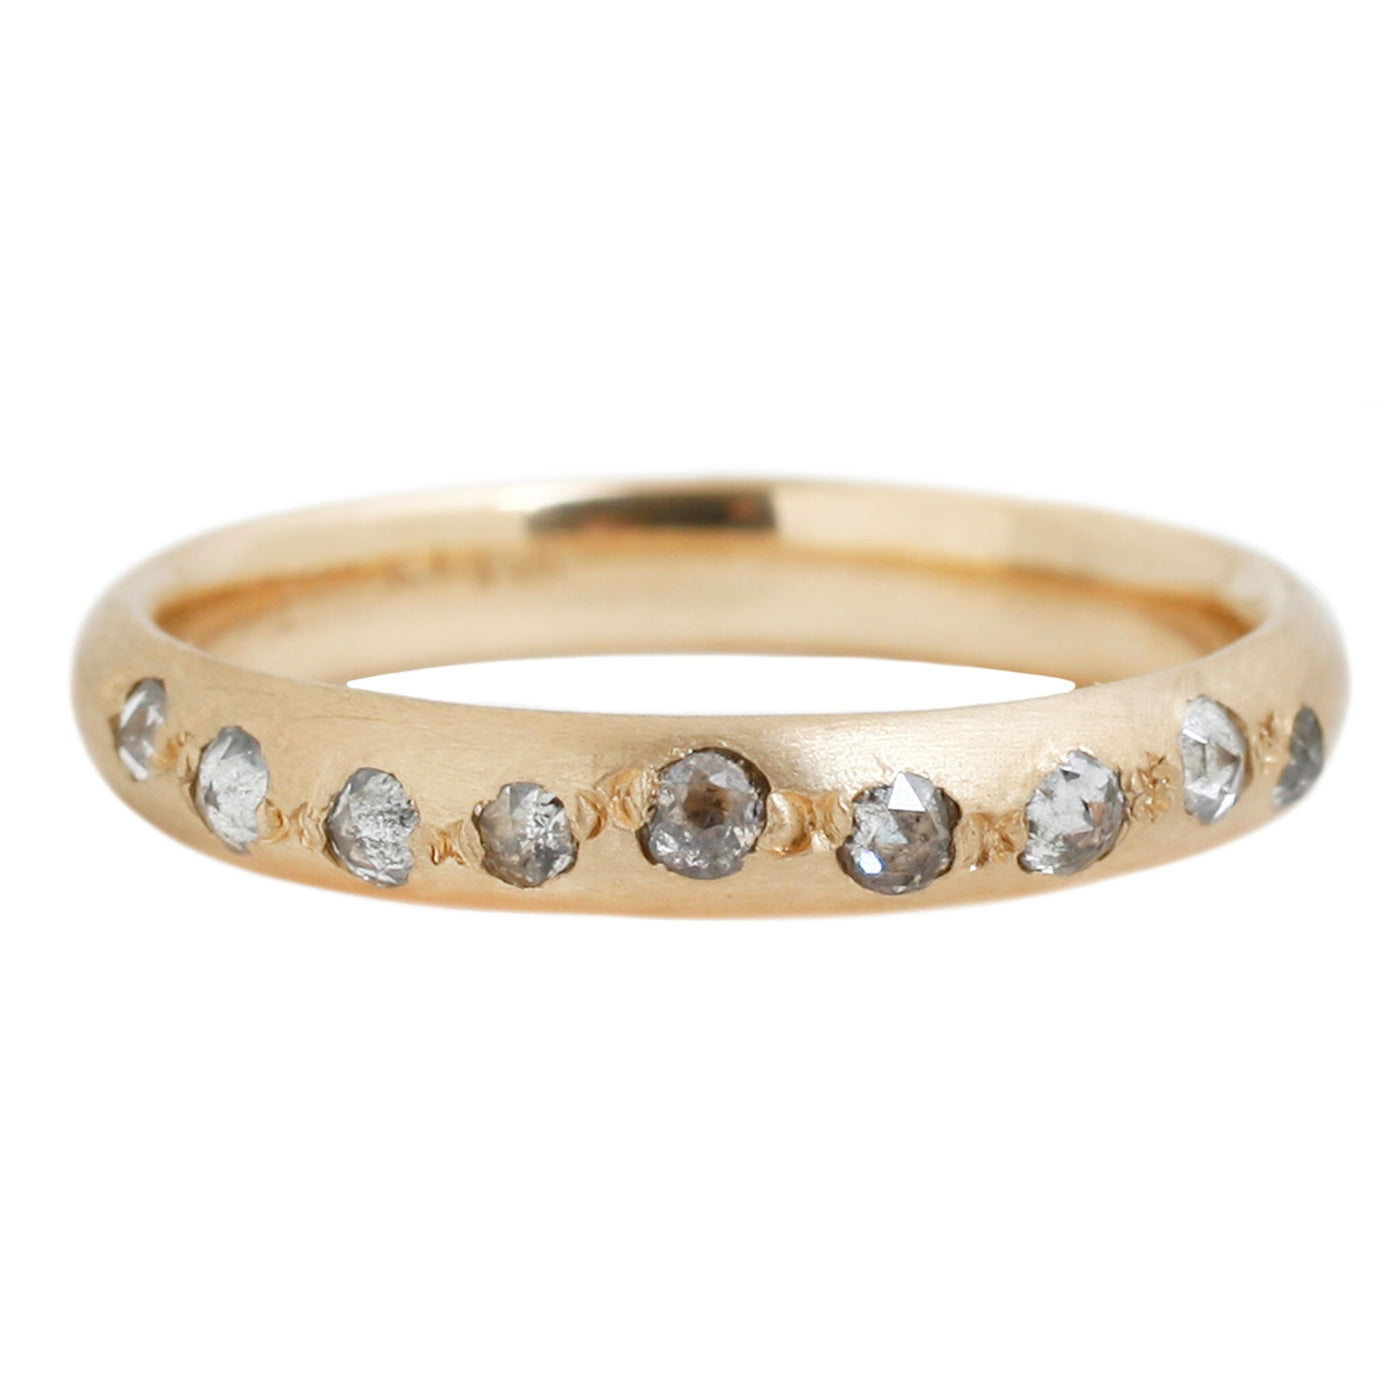 Rebecca Overmann Half Eternity Diamond Band in Yellow Gold